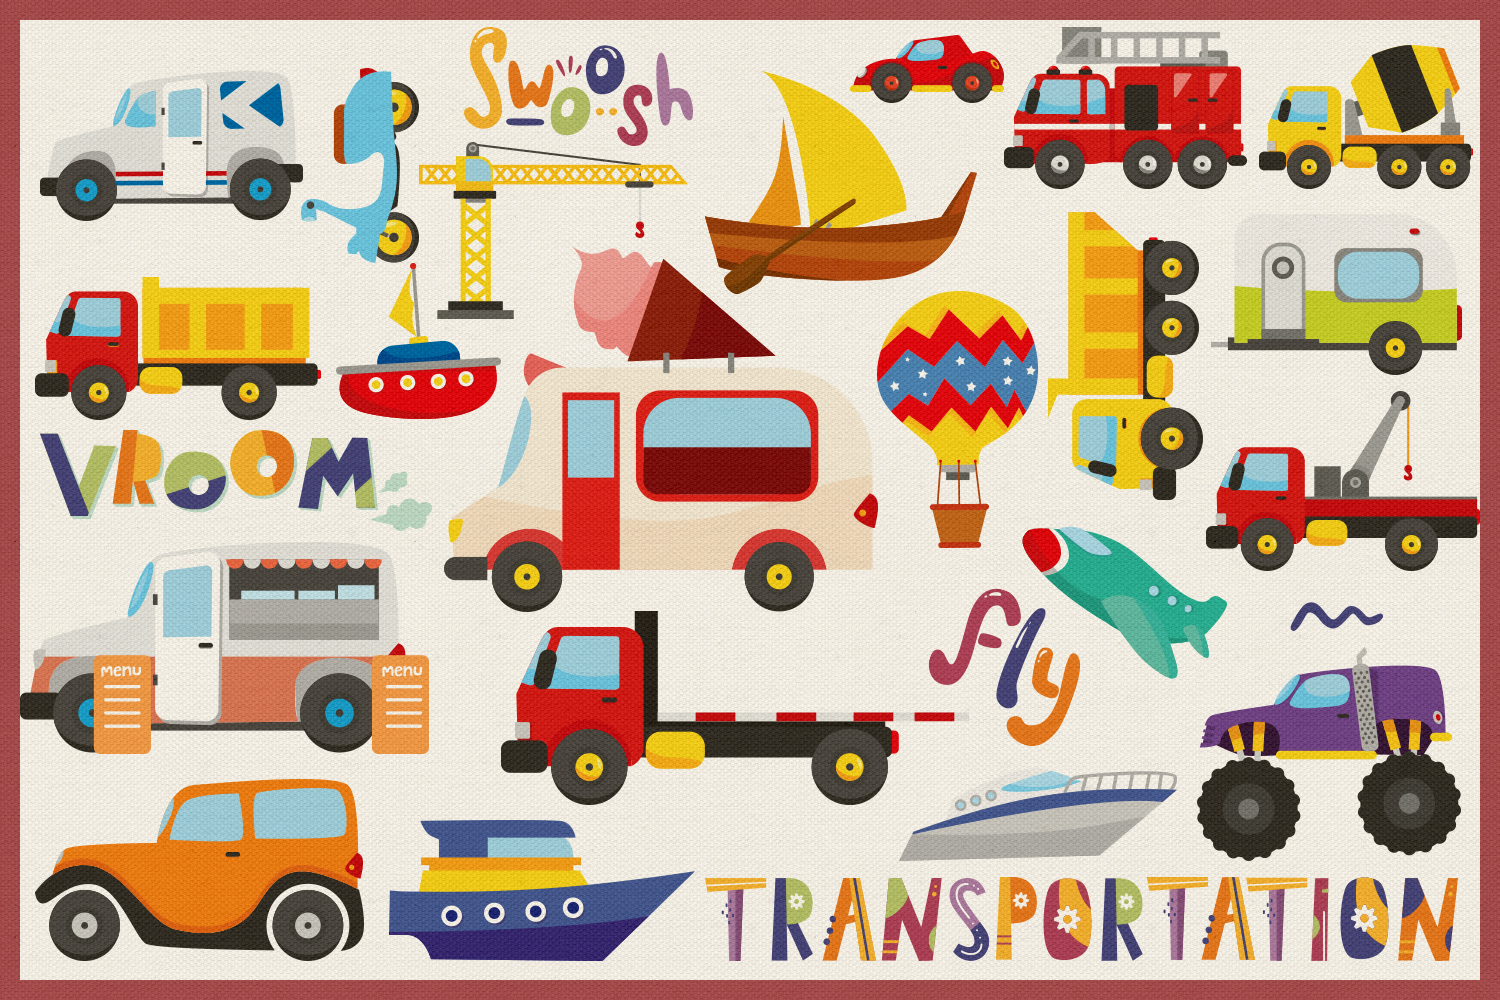 75 Transportation Vector Clipart & Seamless Patterns example image 4